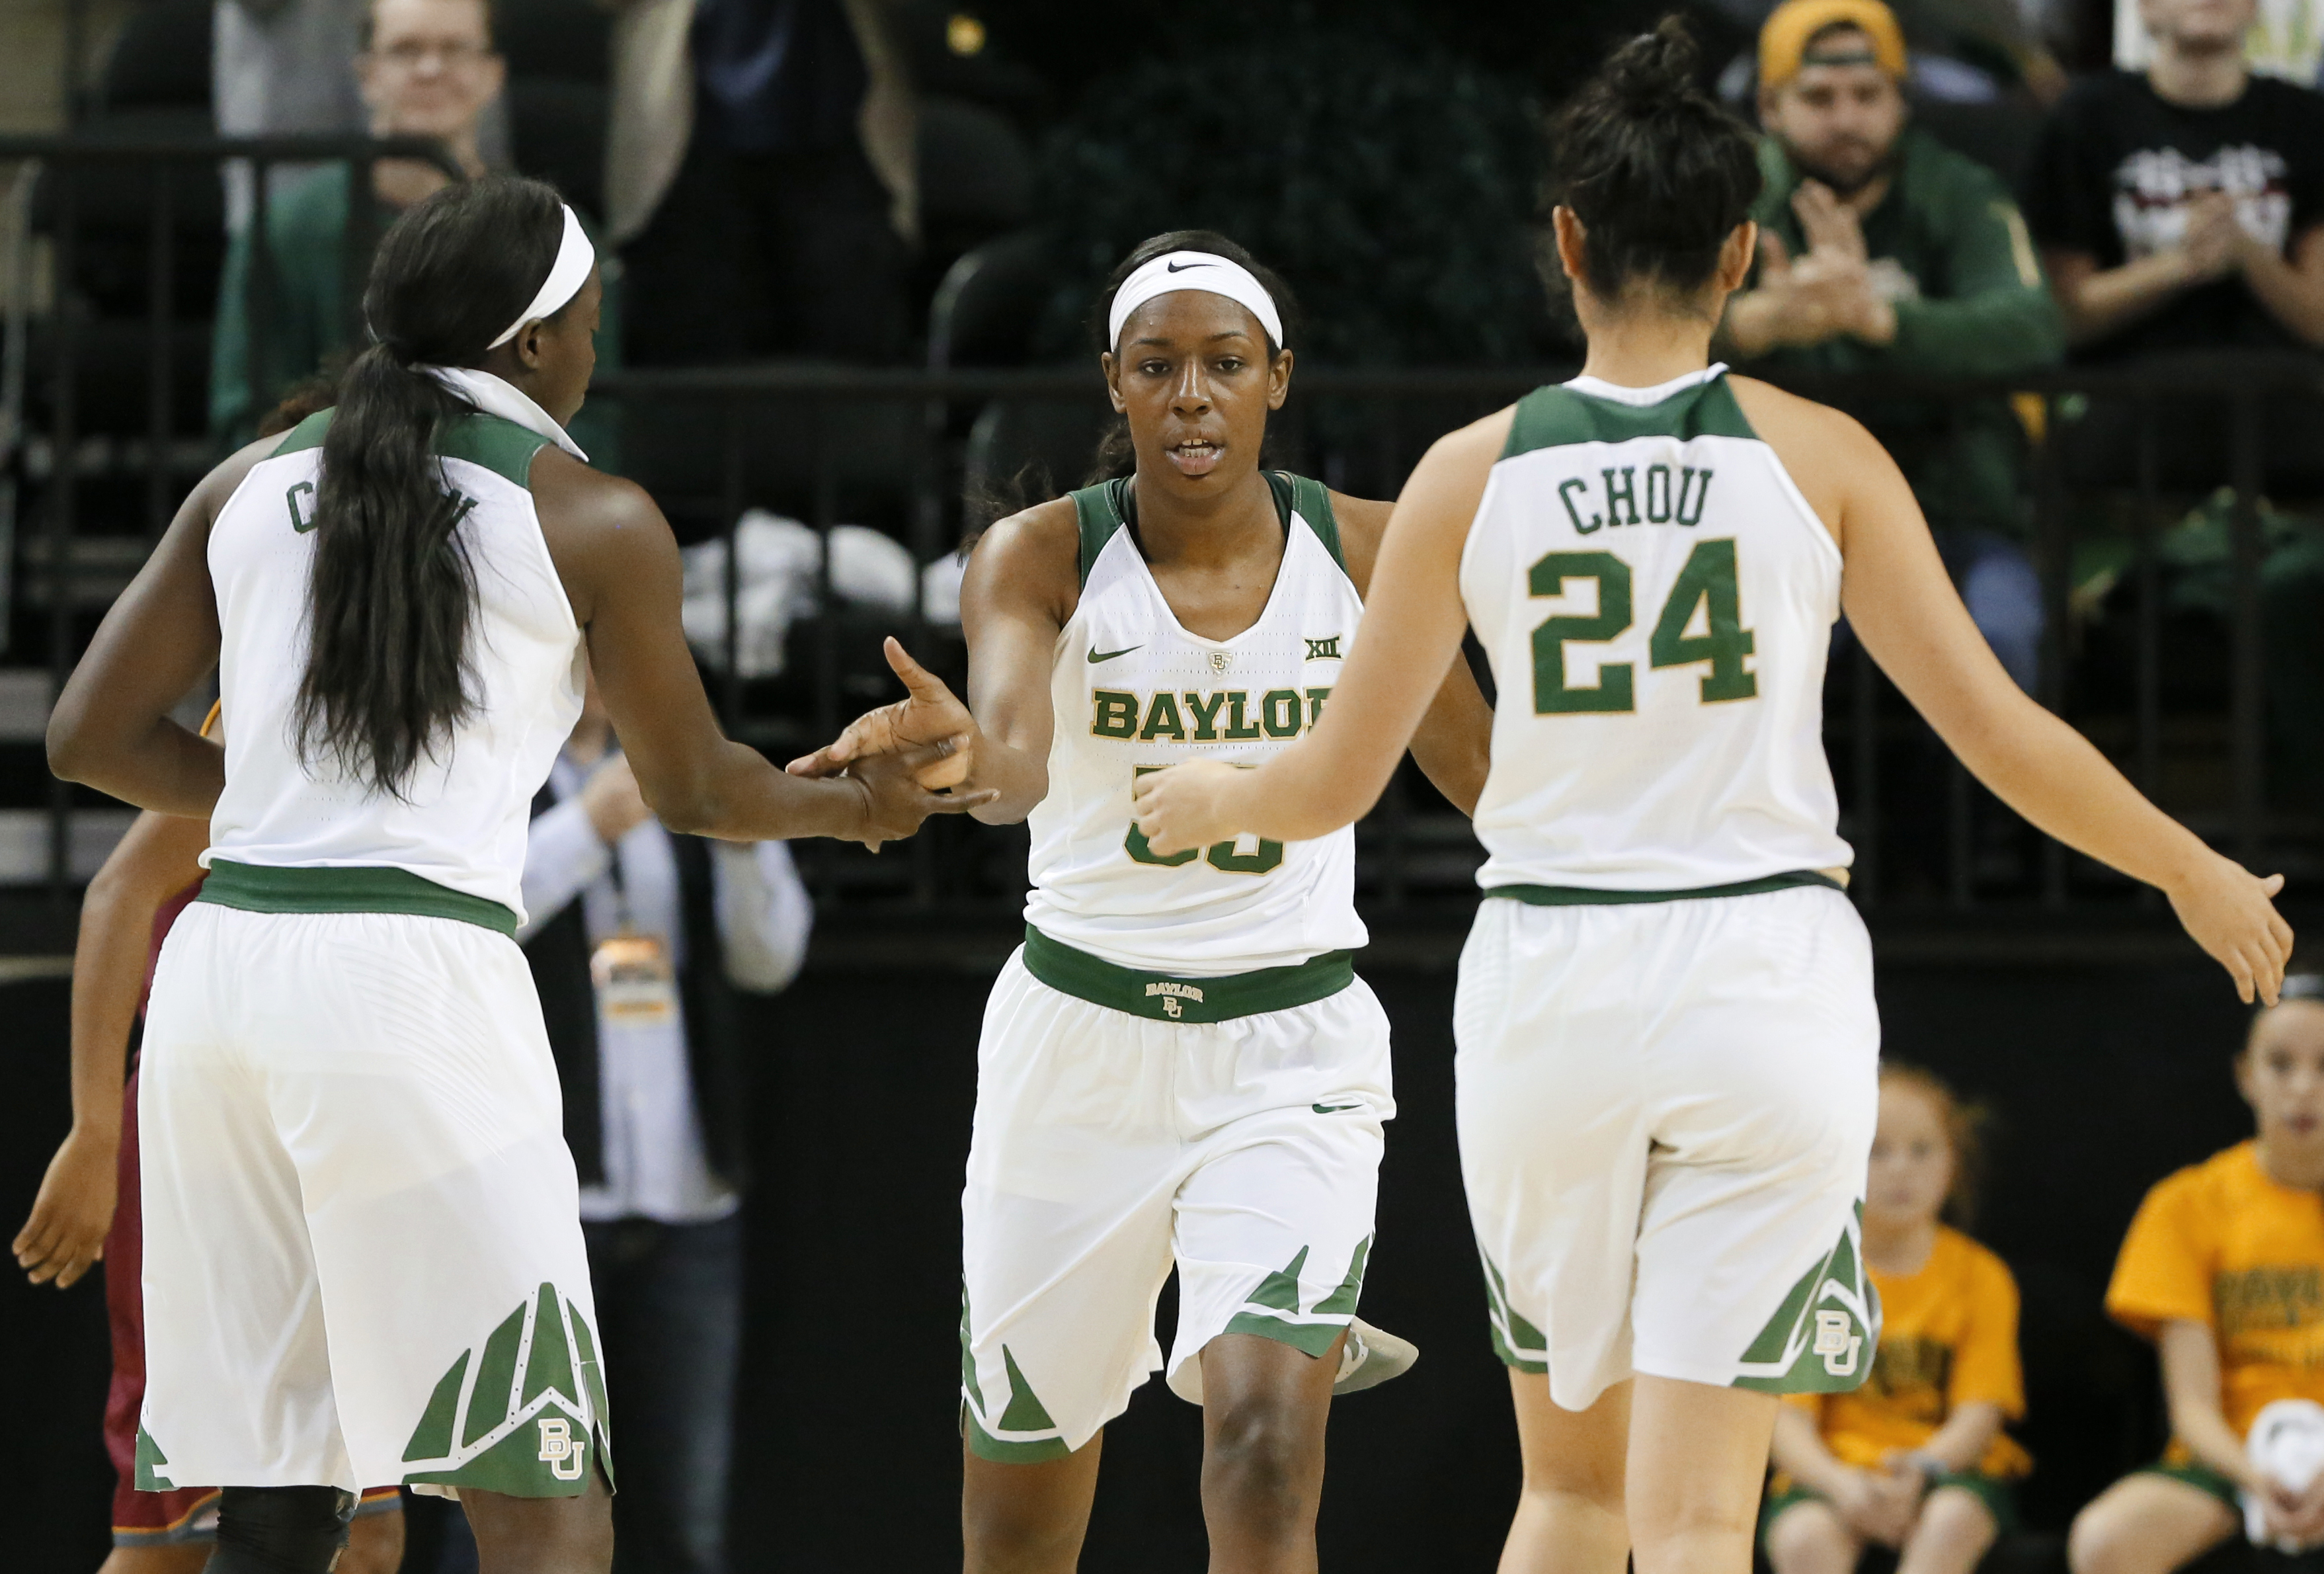 Baylor's Dekeiya Cohen, left, and Natalie Chou (24) celebrate a basket scored by Khadijiah Cave, center, in the first half of an NCAA college basketball game against Winthrop on Thursday, Dec. 15, 2016, in Waco, Texas. Cave led all scoring with 25 points